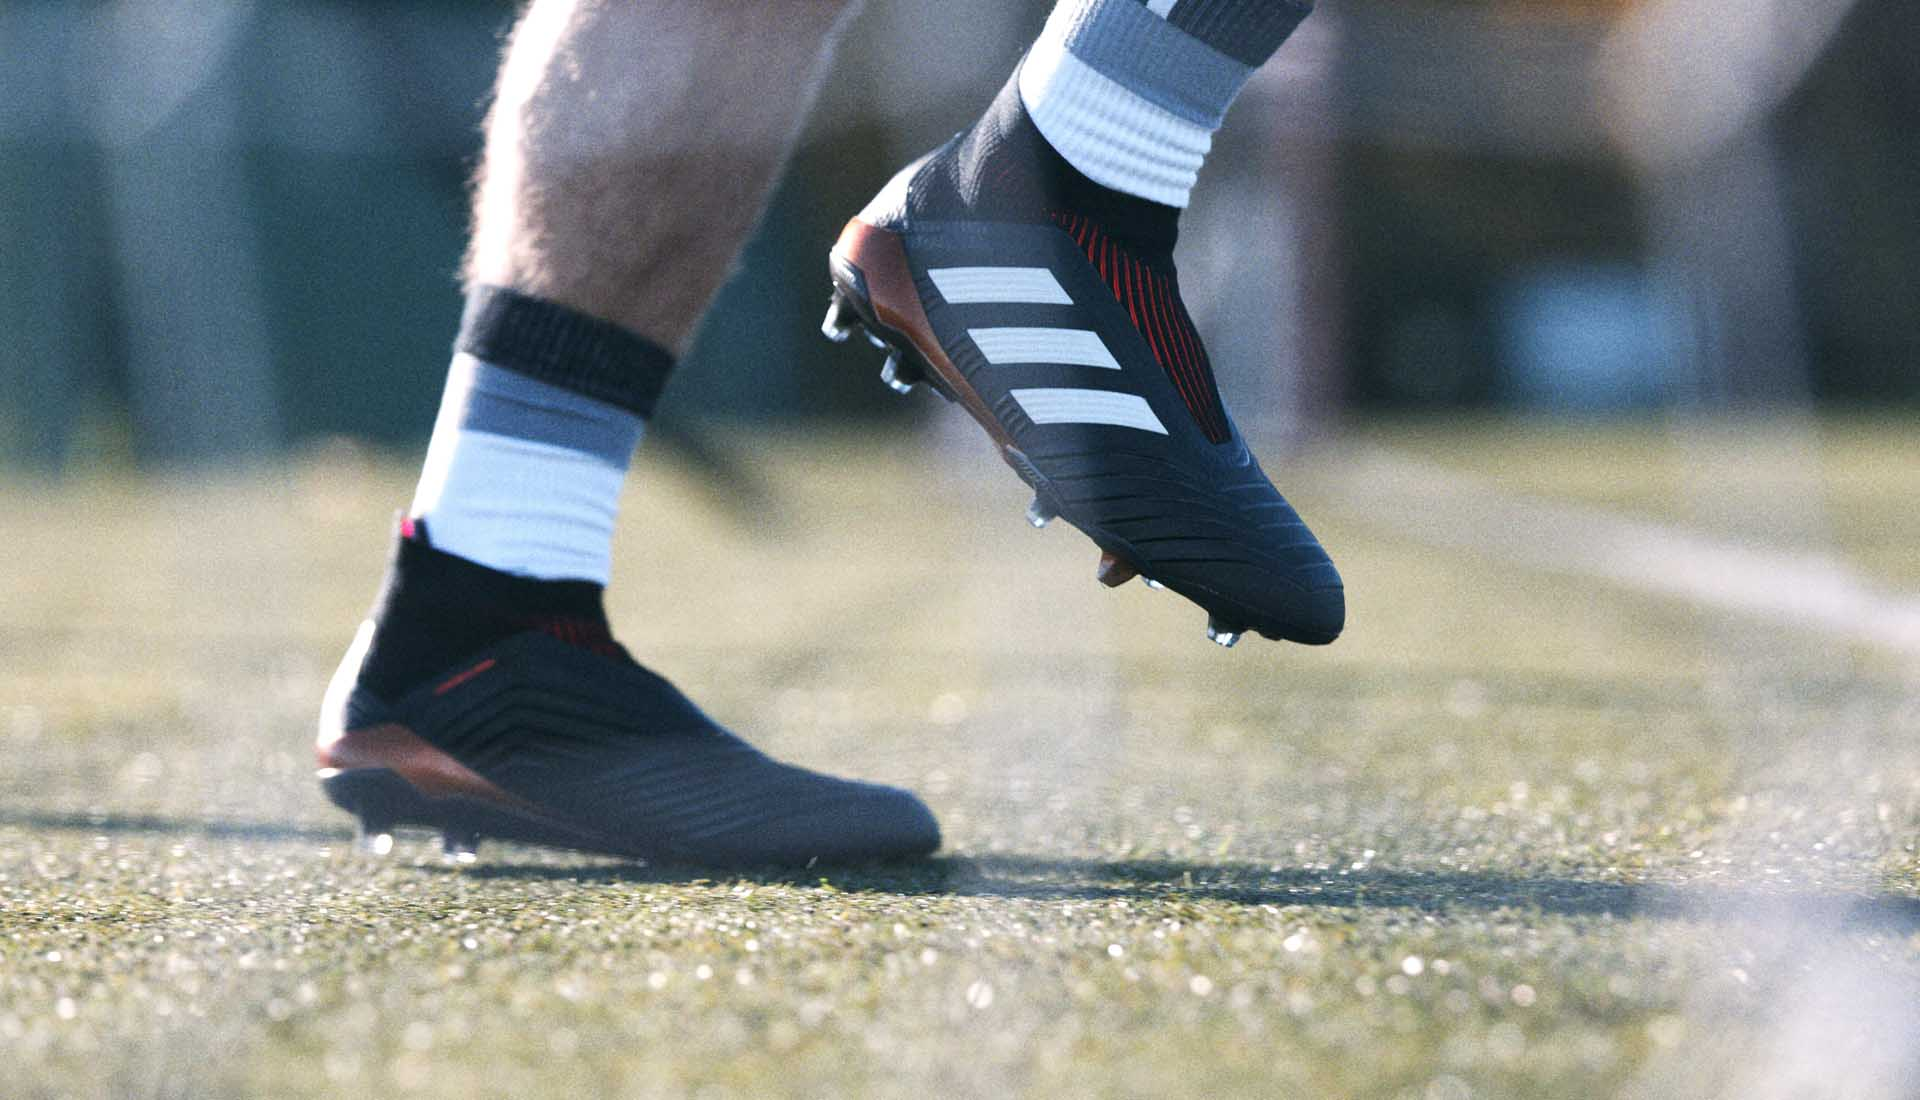 Laced Up  adidas Predator 18+ Football Boots Review - SoccerBible. 9af632543